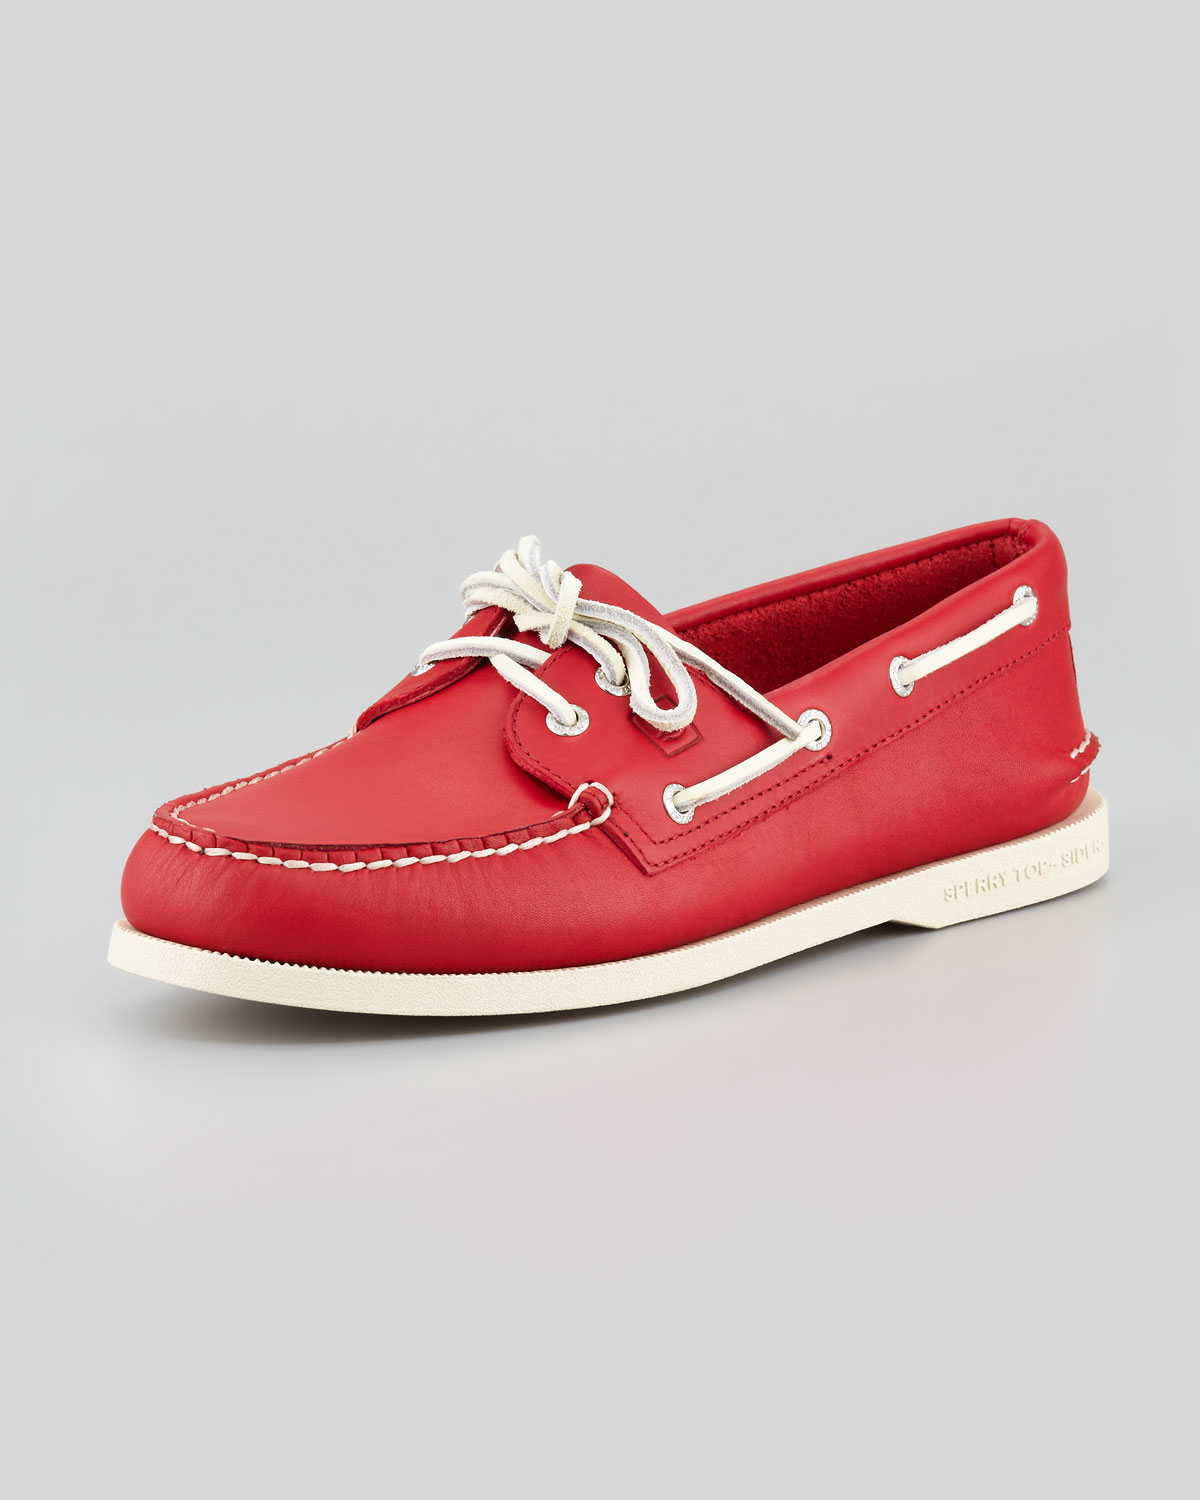 Mens Sperry Boat Shoes Slip On